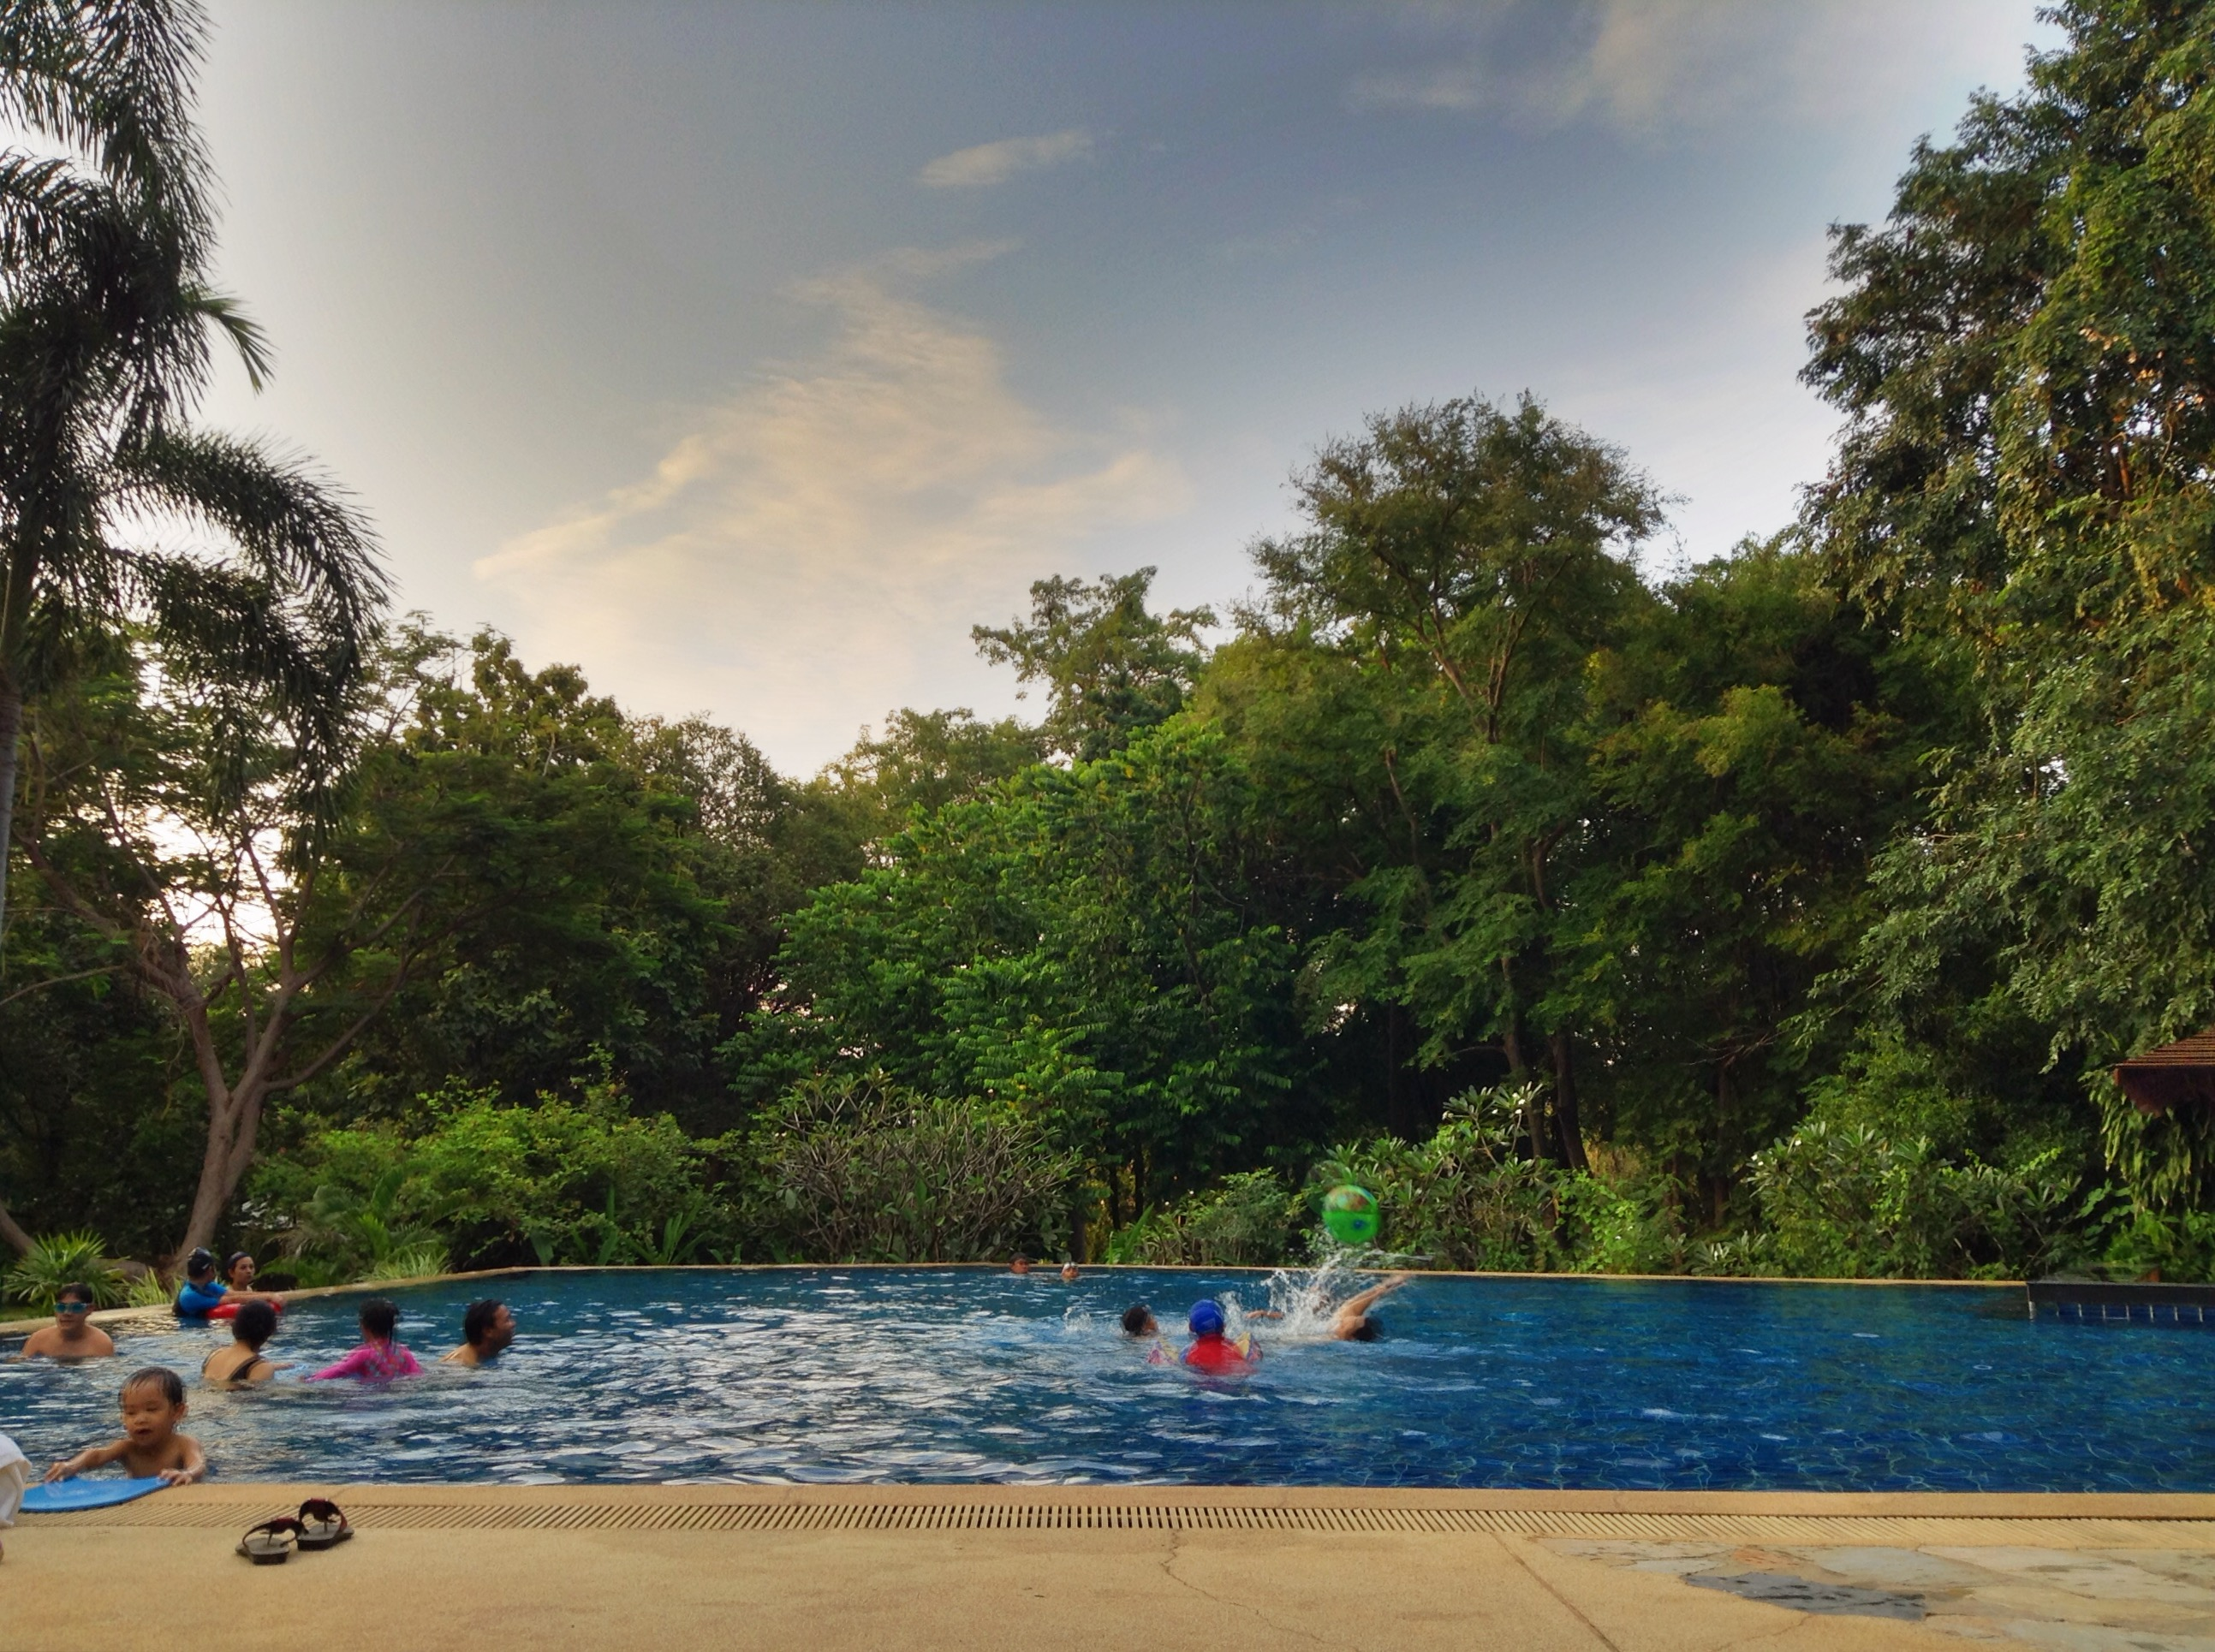 The pool at Comsaed